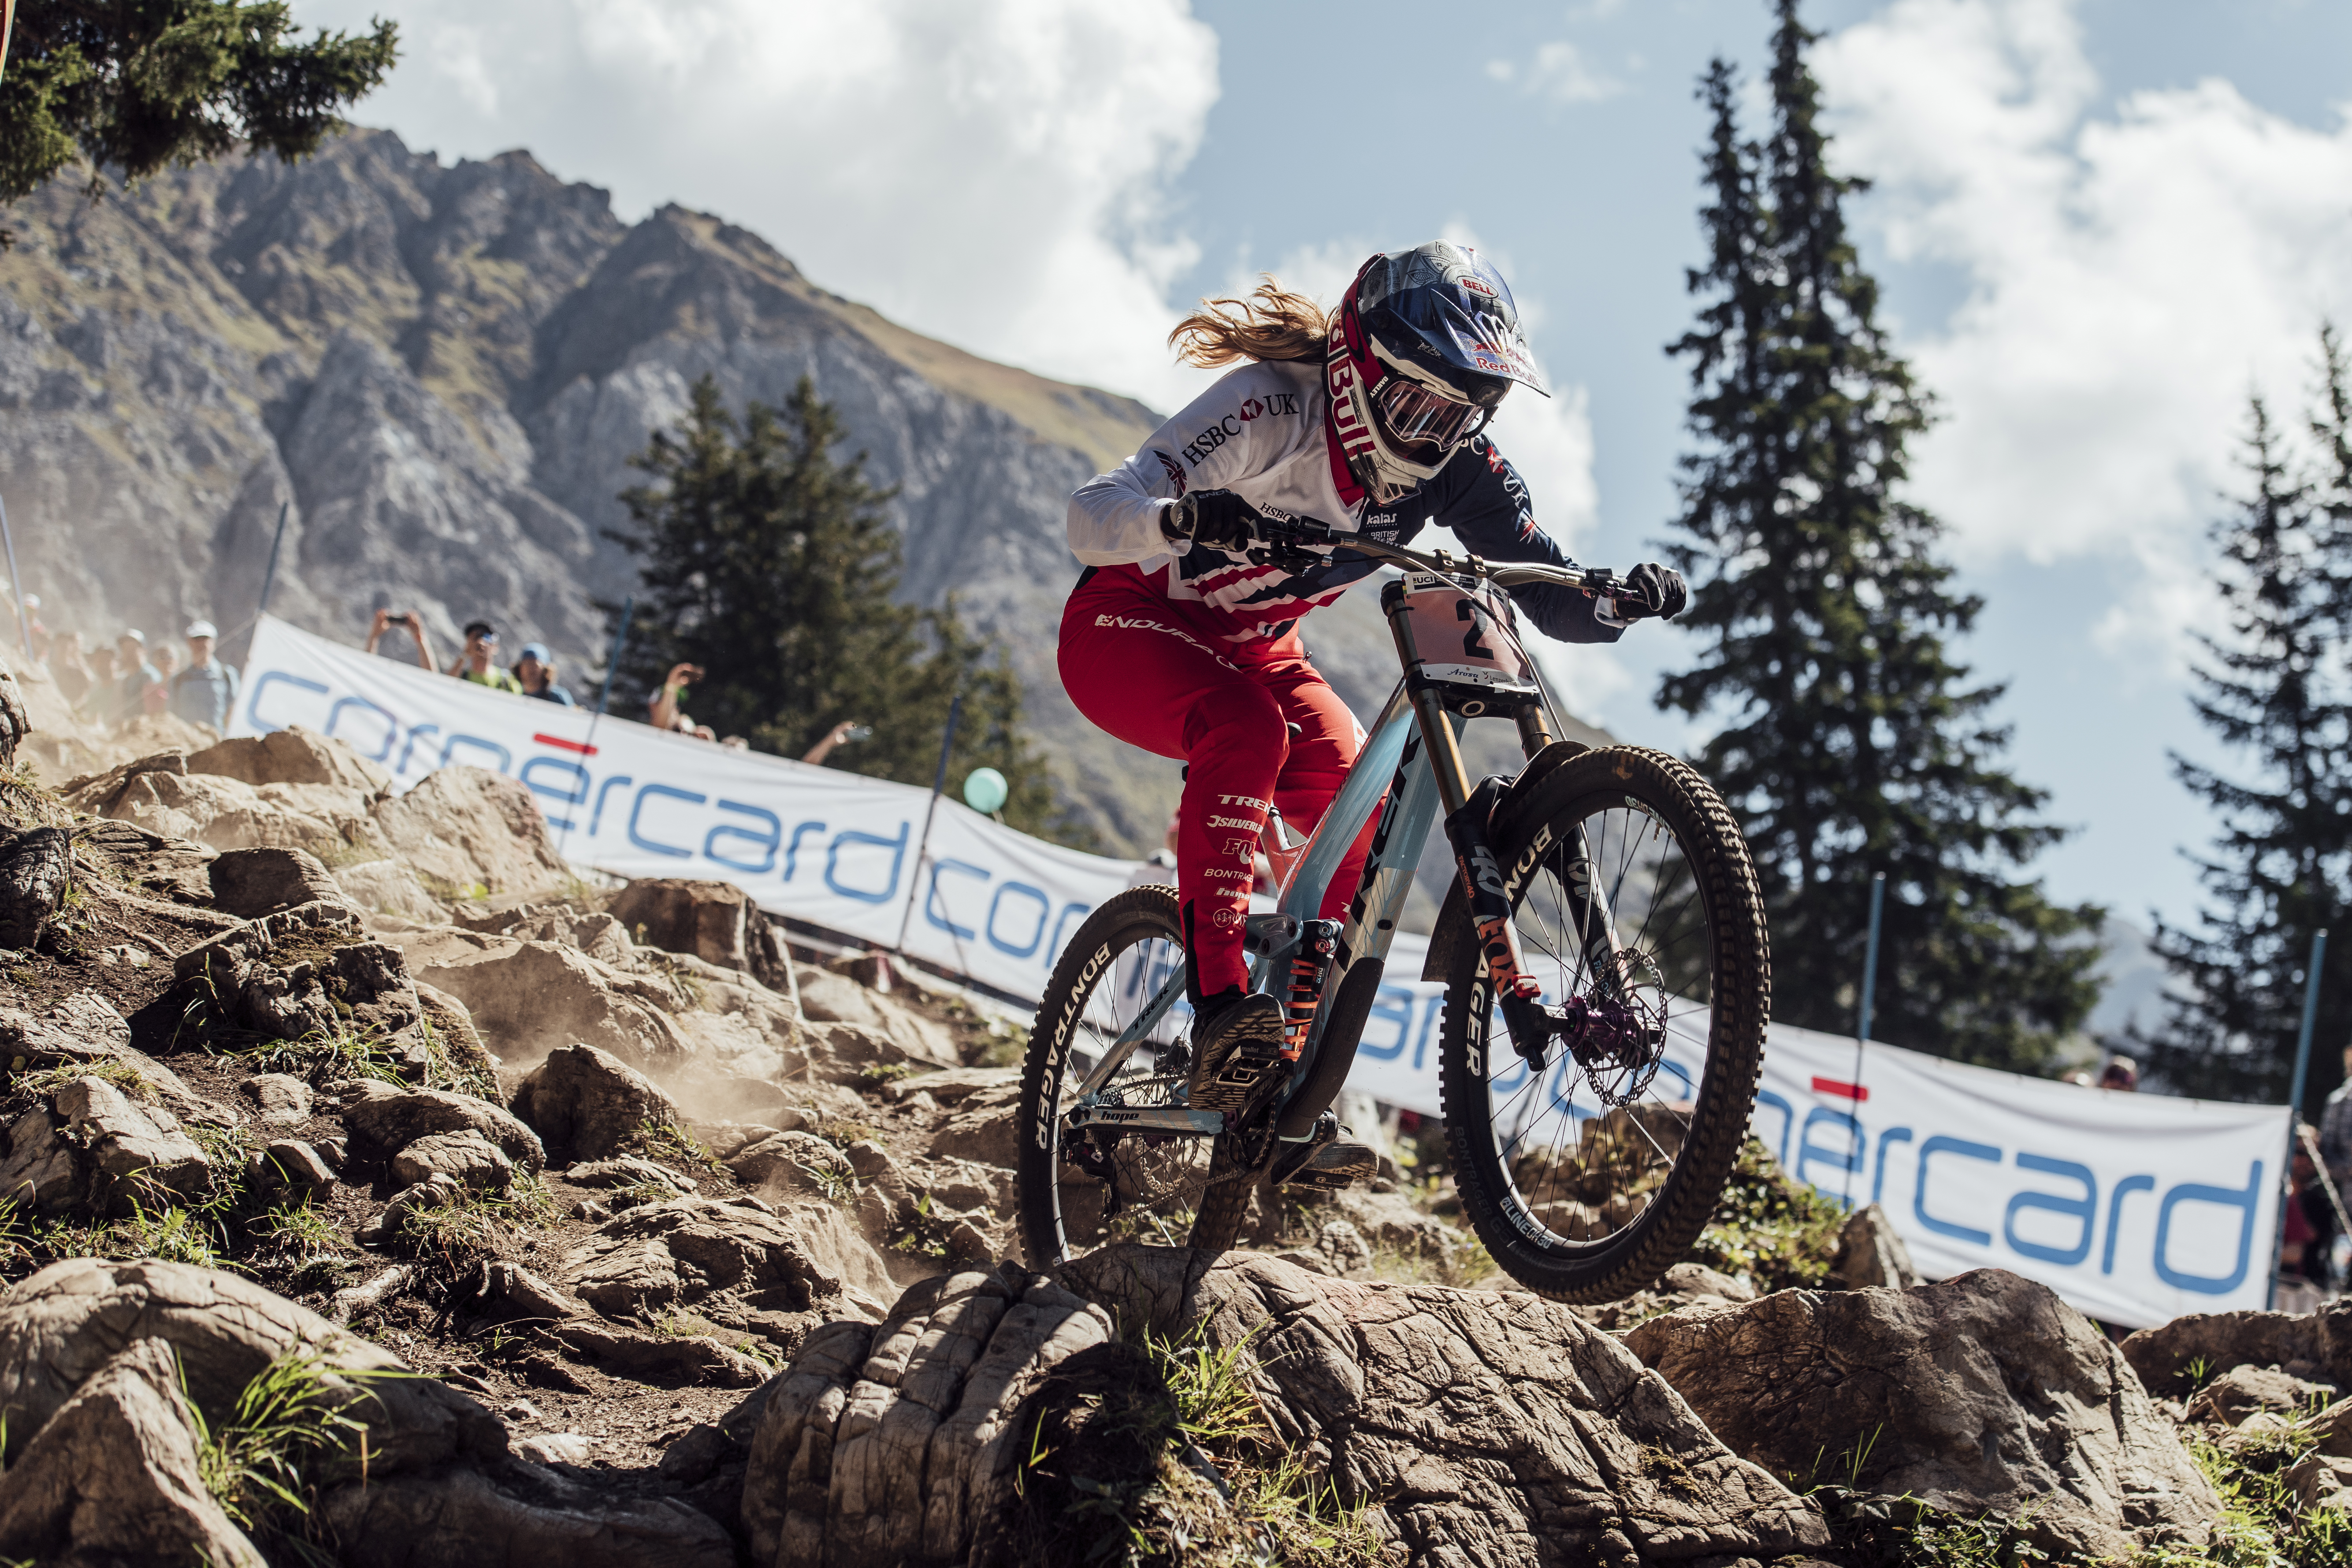 f70b770b253 ... DH World Championships in Lenzerheide on September 9th, 2018. Atherton  set a freakish pace that weekend. Photo: Bartek Wolinski / Red Bull Content  Pool